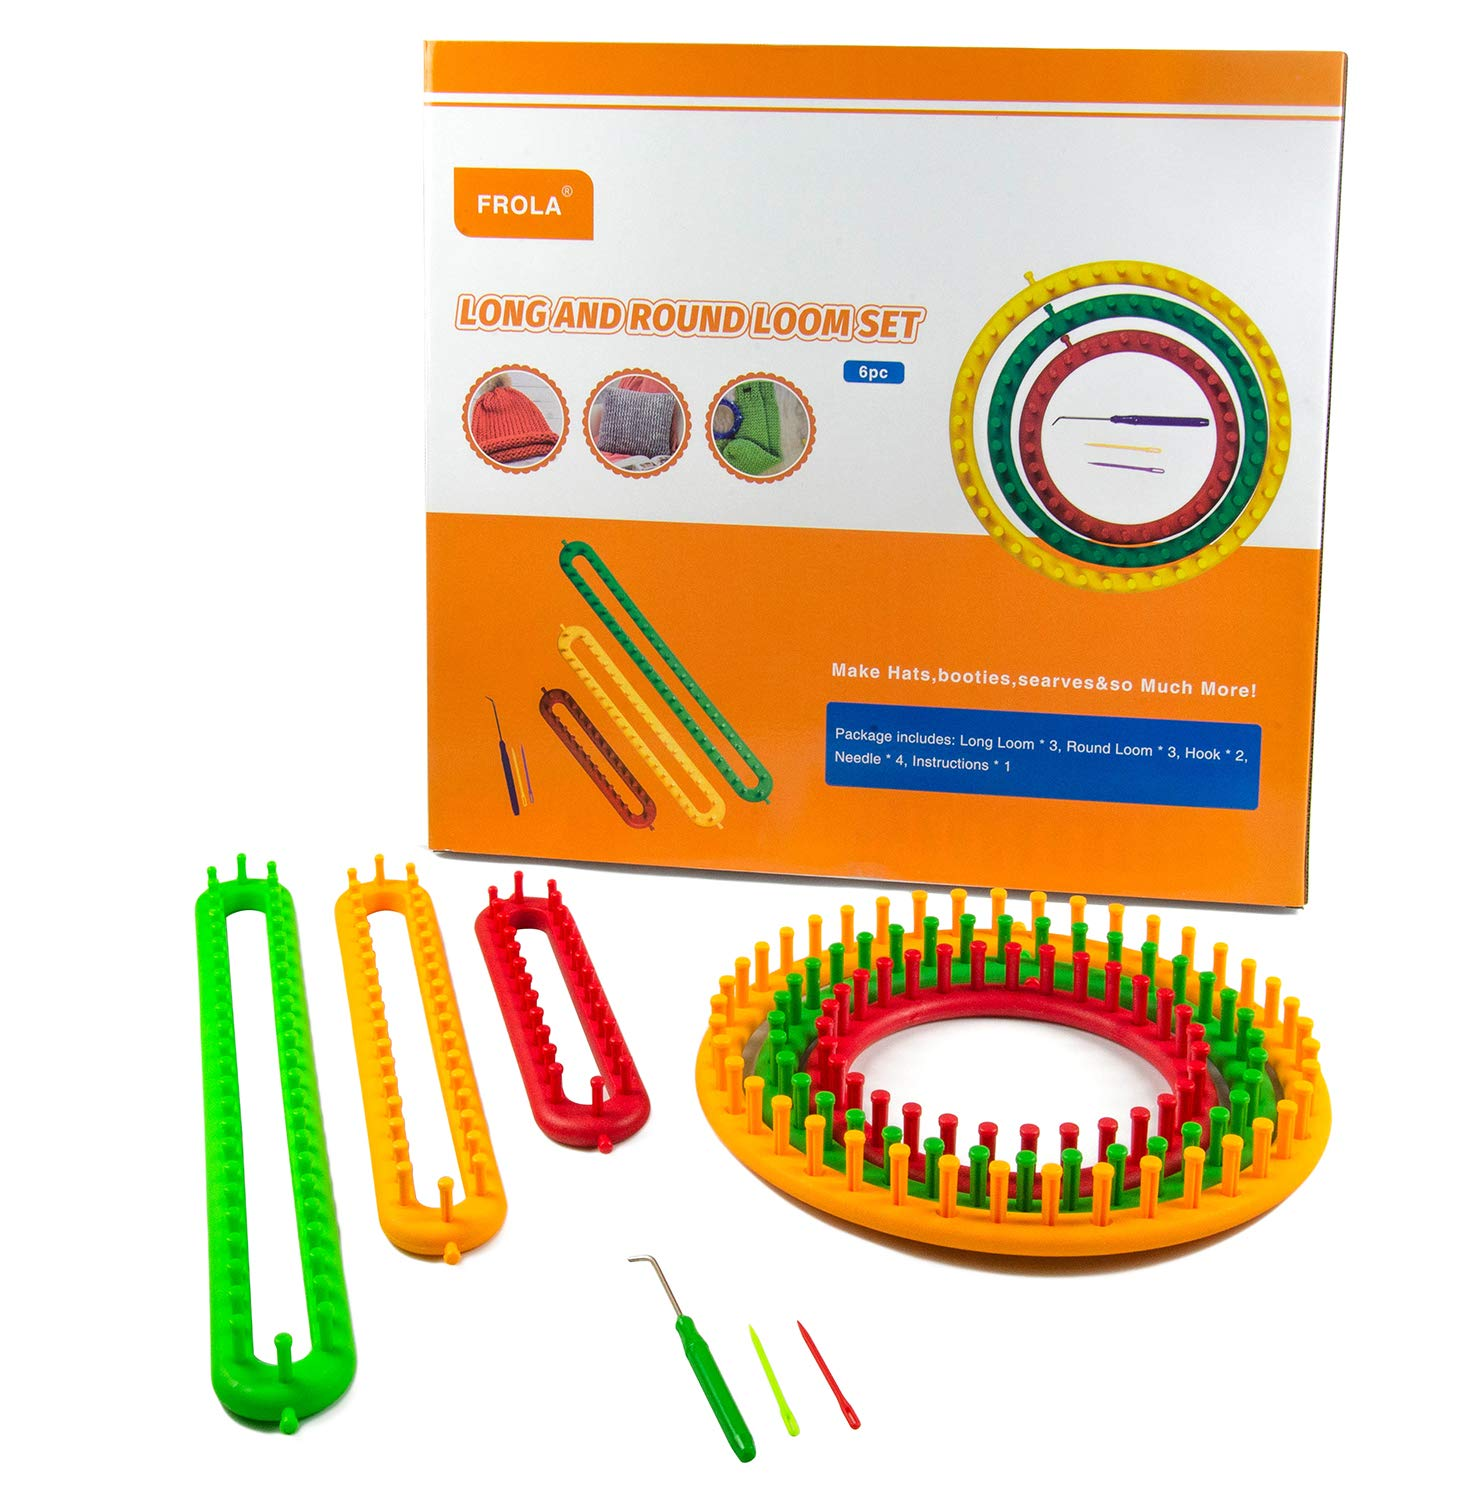 Long Loom and Round Loom DIY Kit by Frola